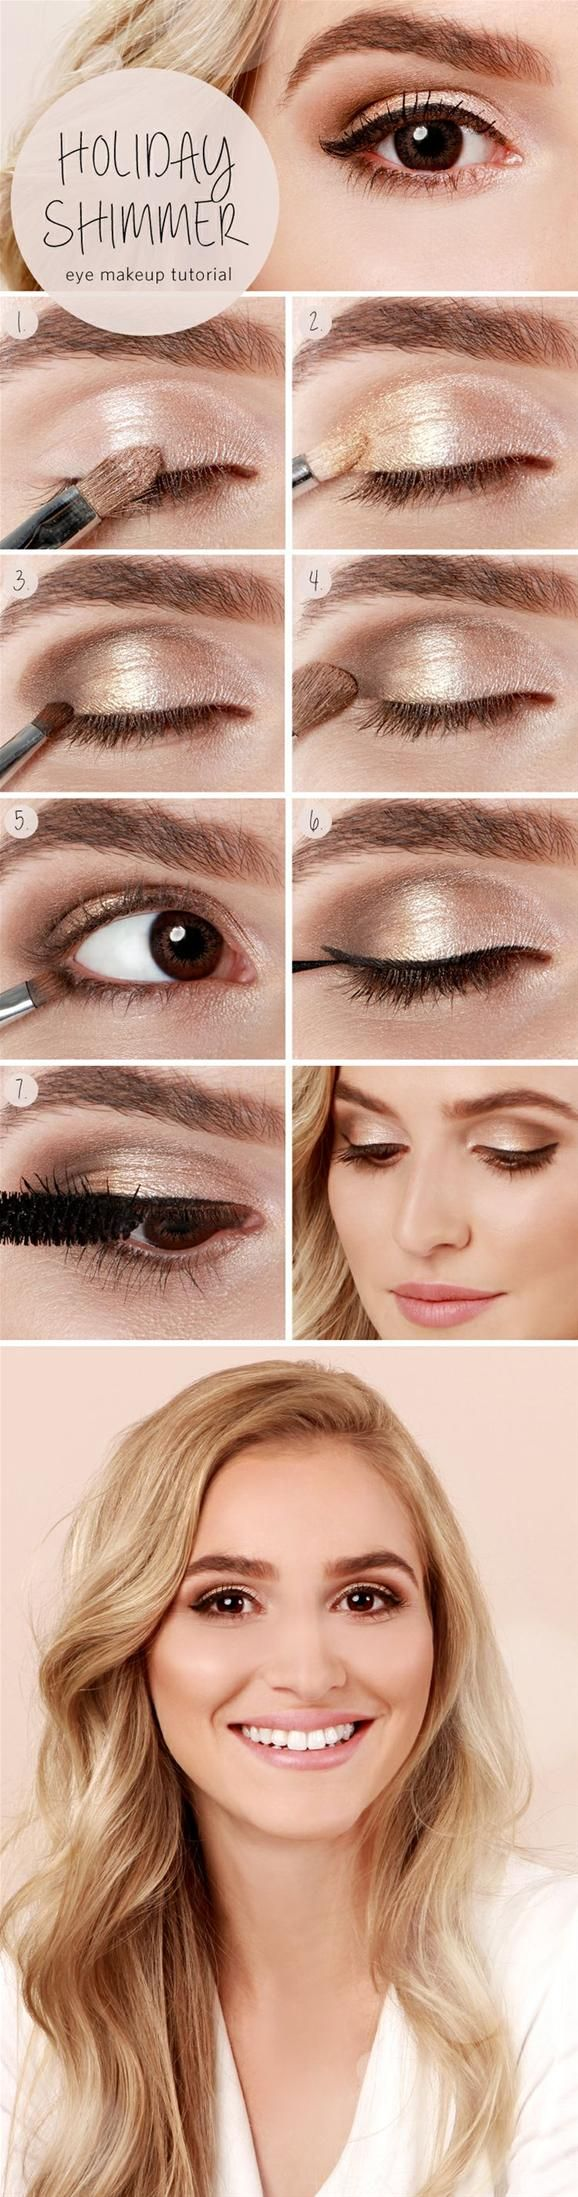 Shimmery Eye Makeup Tutorial - Head over to http://Pampadour.com for product suggestions to recreate this beauty look! http://Pampadour.com is a community of beauty bloggers, professionals, brands and beauty enthusiasts!